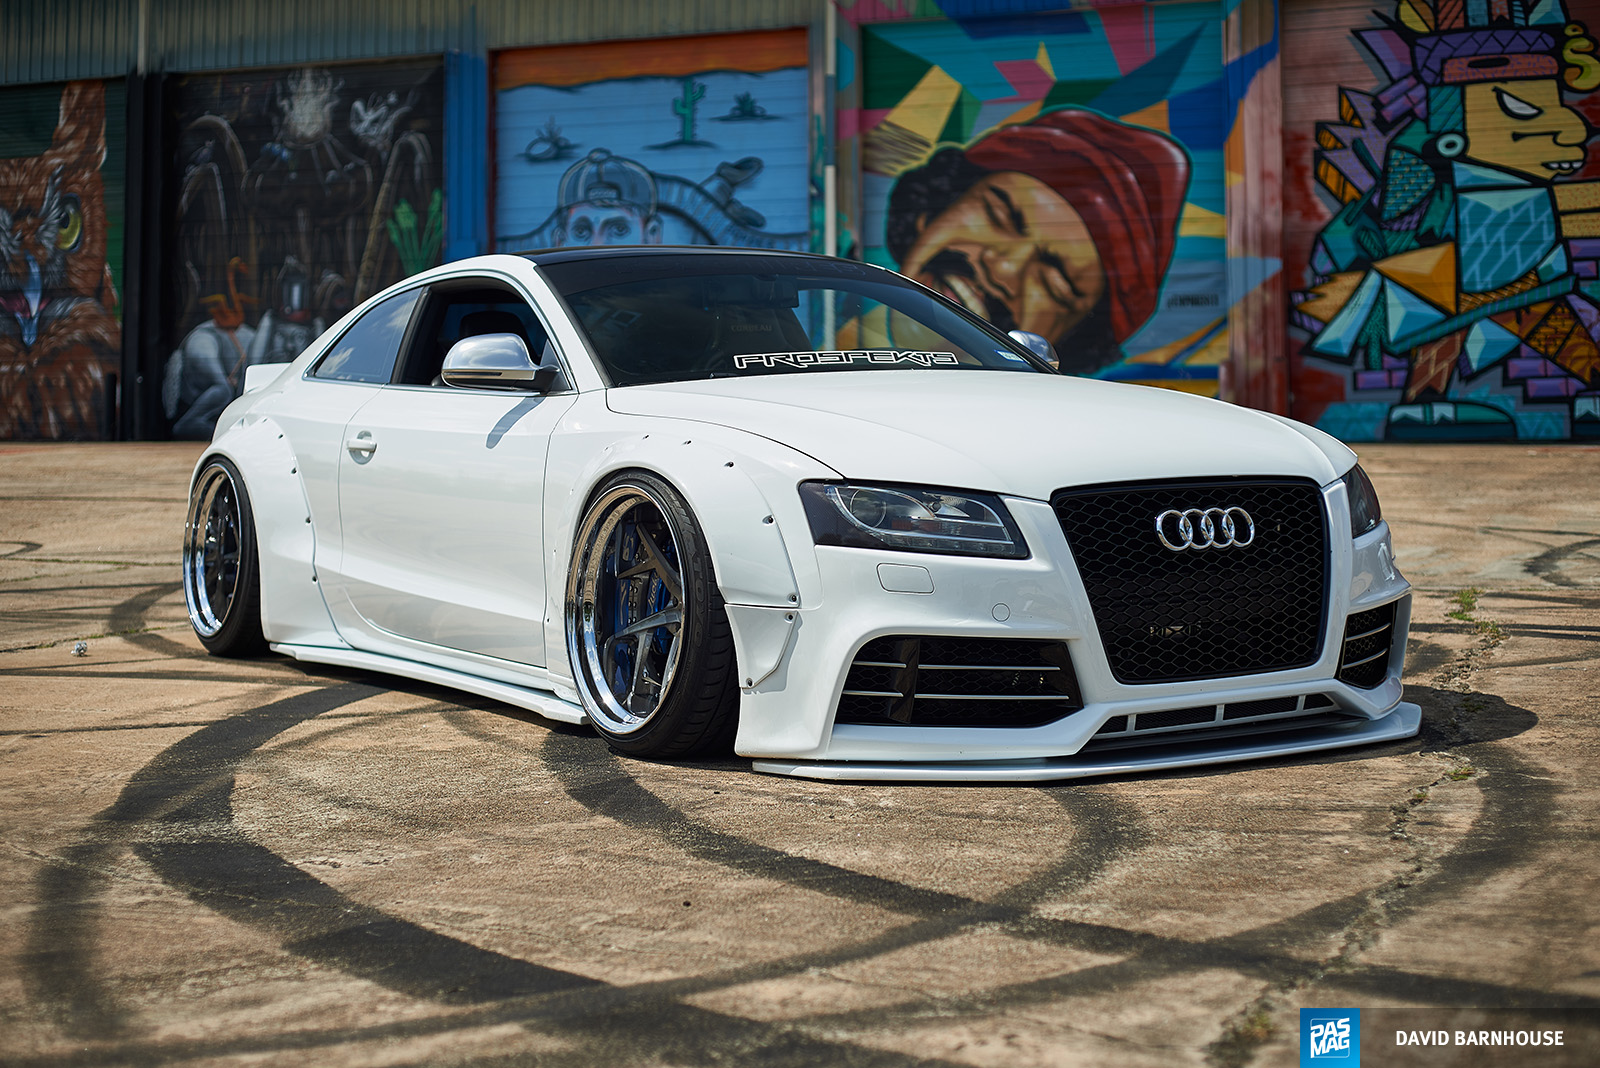 03 Thomas Ho 2009 Audi S5 pasmag builds to follow